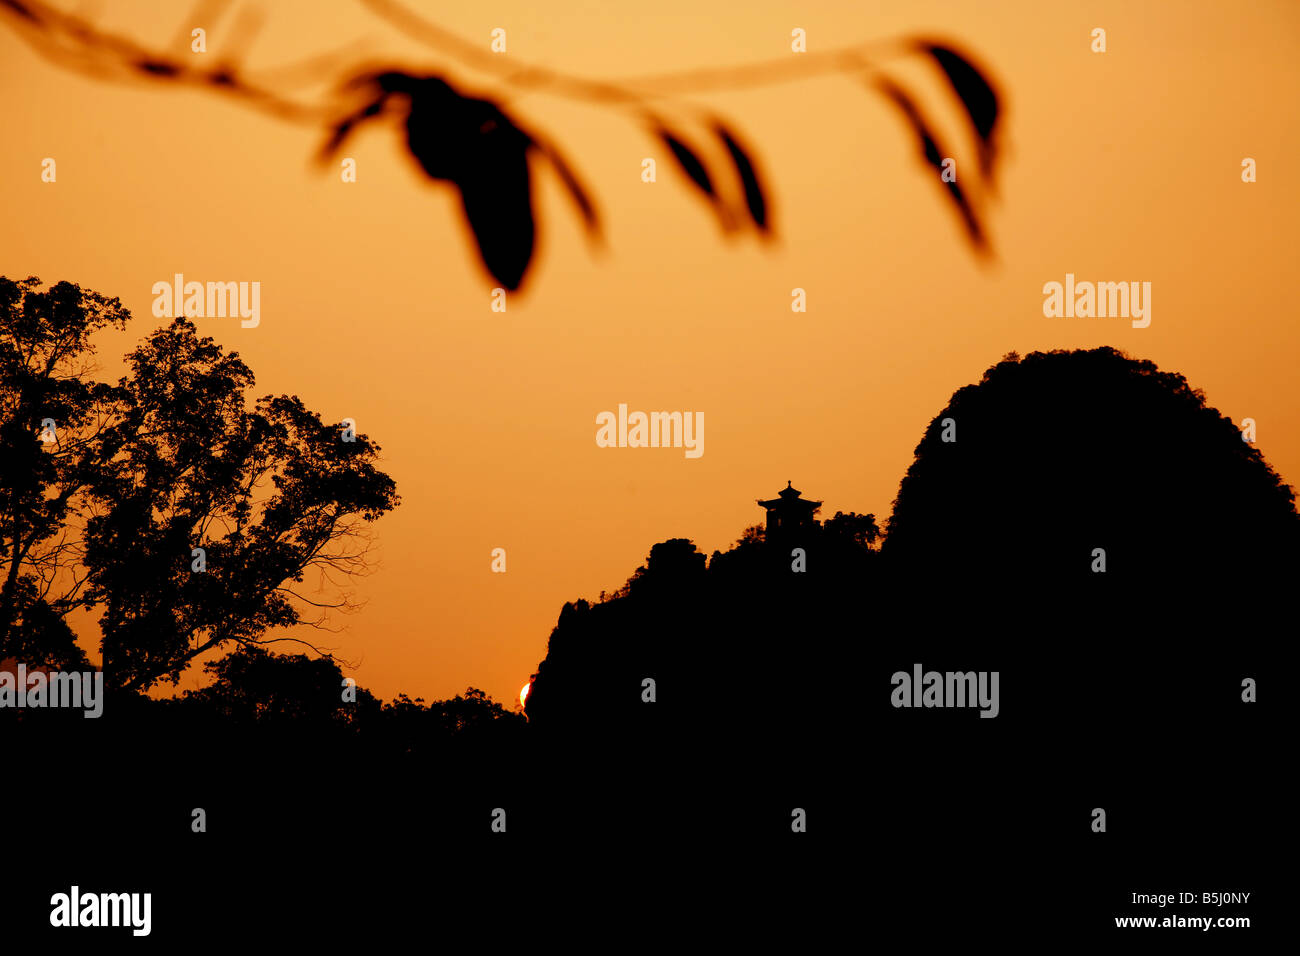 Sunset in Yangshuo, on the Li River, Guangxi Province, China Stock Photo